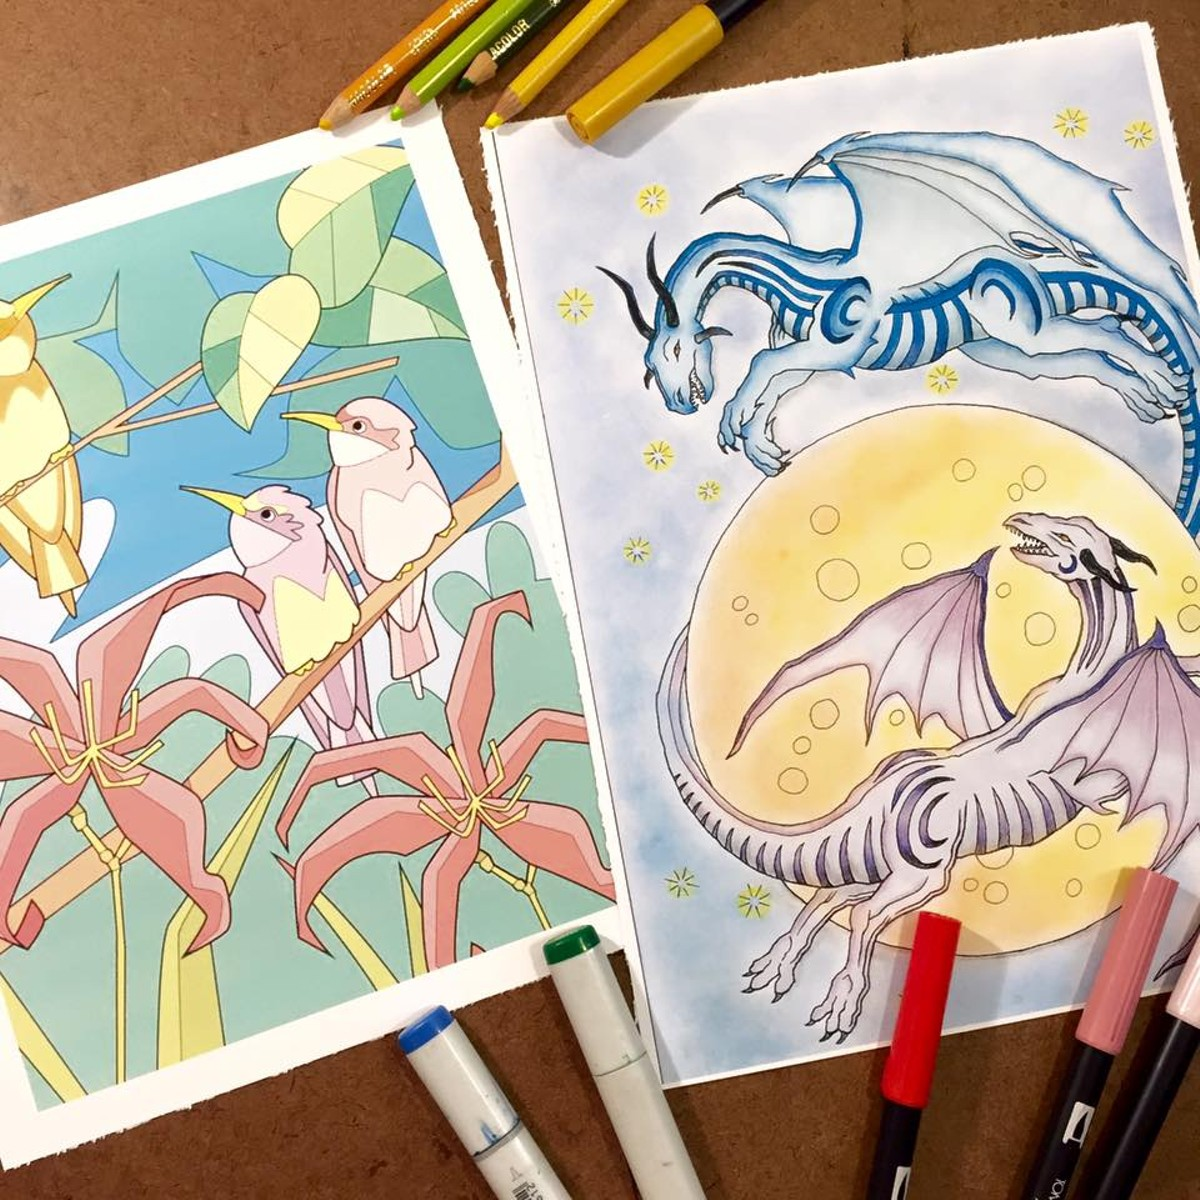 sa based start up blue star coloring books for adults featured in